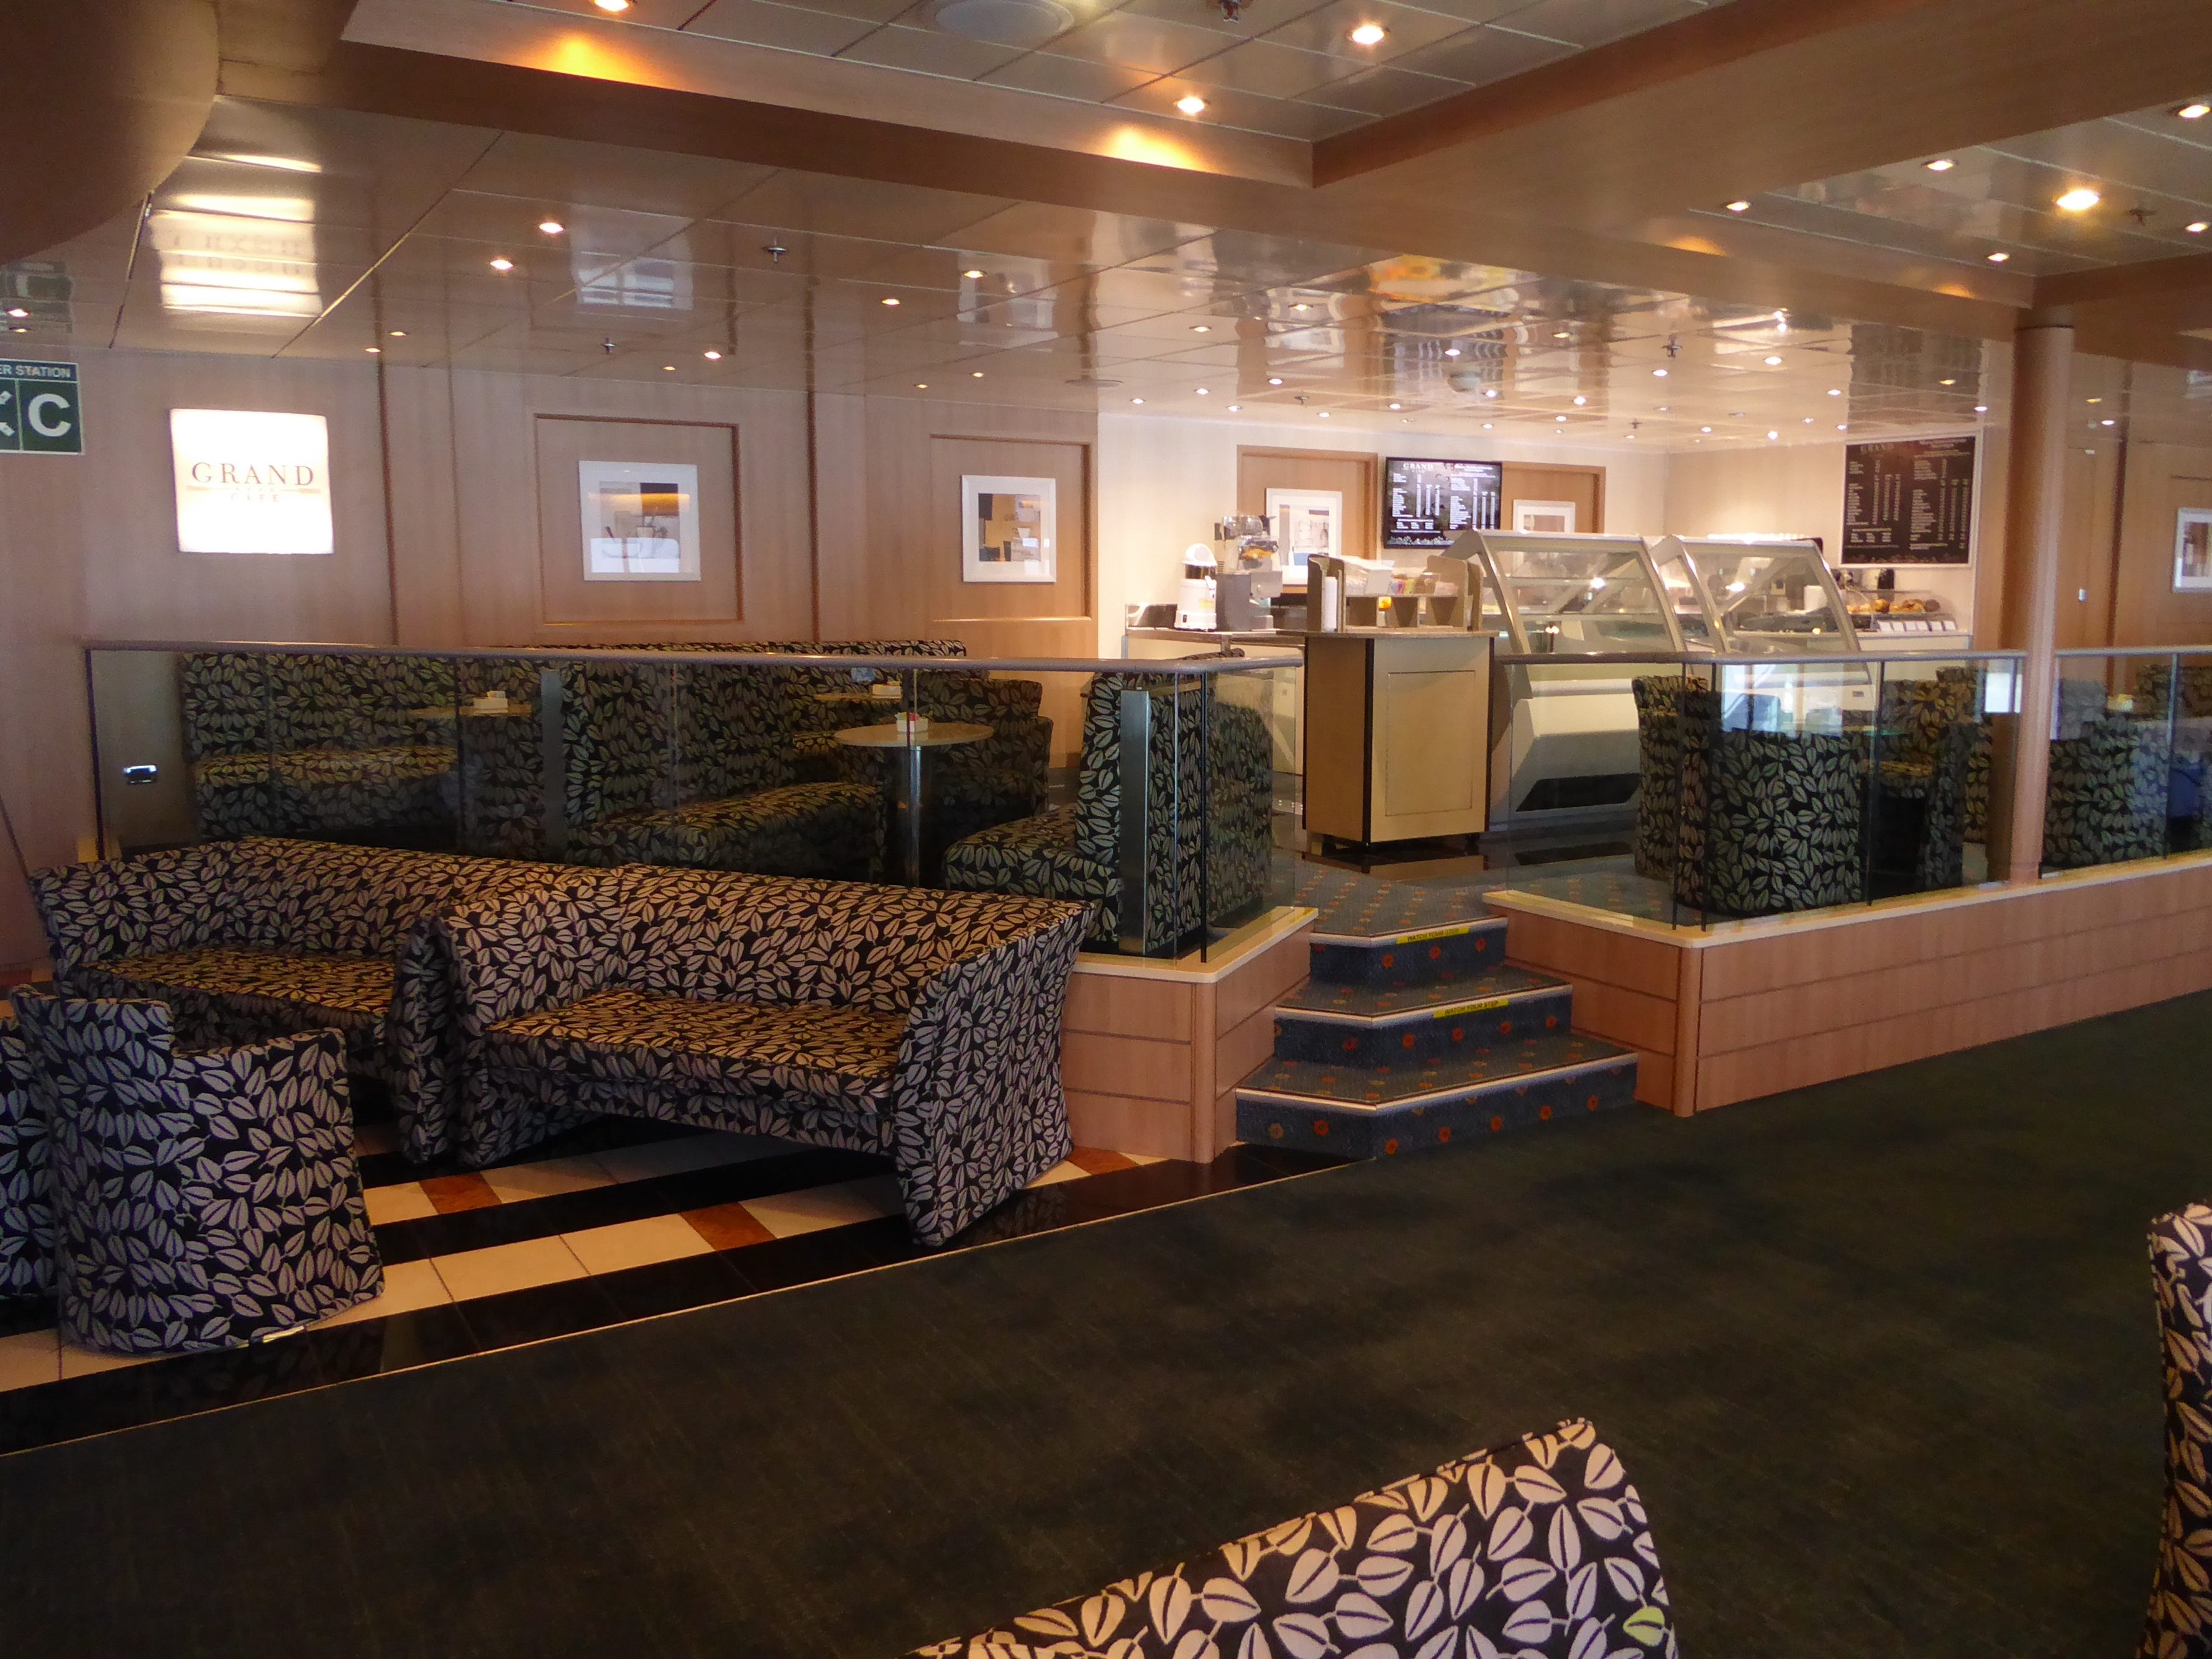 The Grand Cafe is a specialty coffee shop on the starboard side of Paradise Deck.